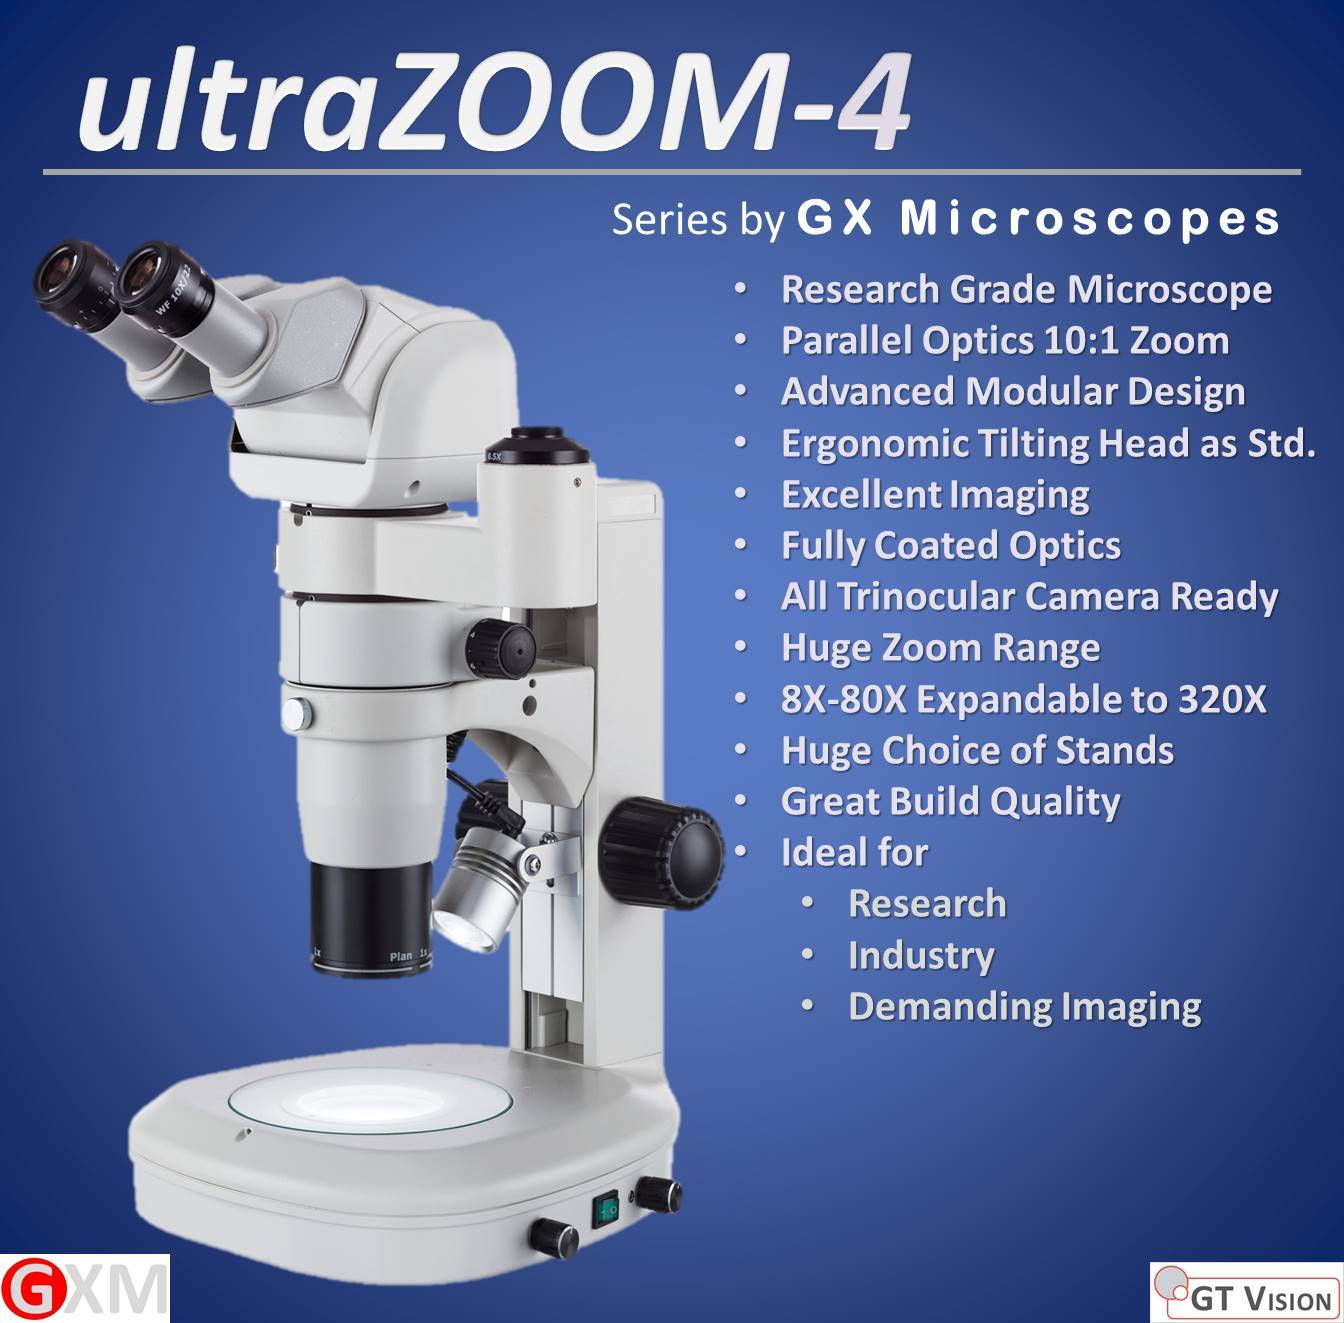 ultraZOOM-4 Stereo Zoom Microscope by GT Vision